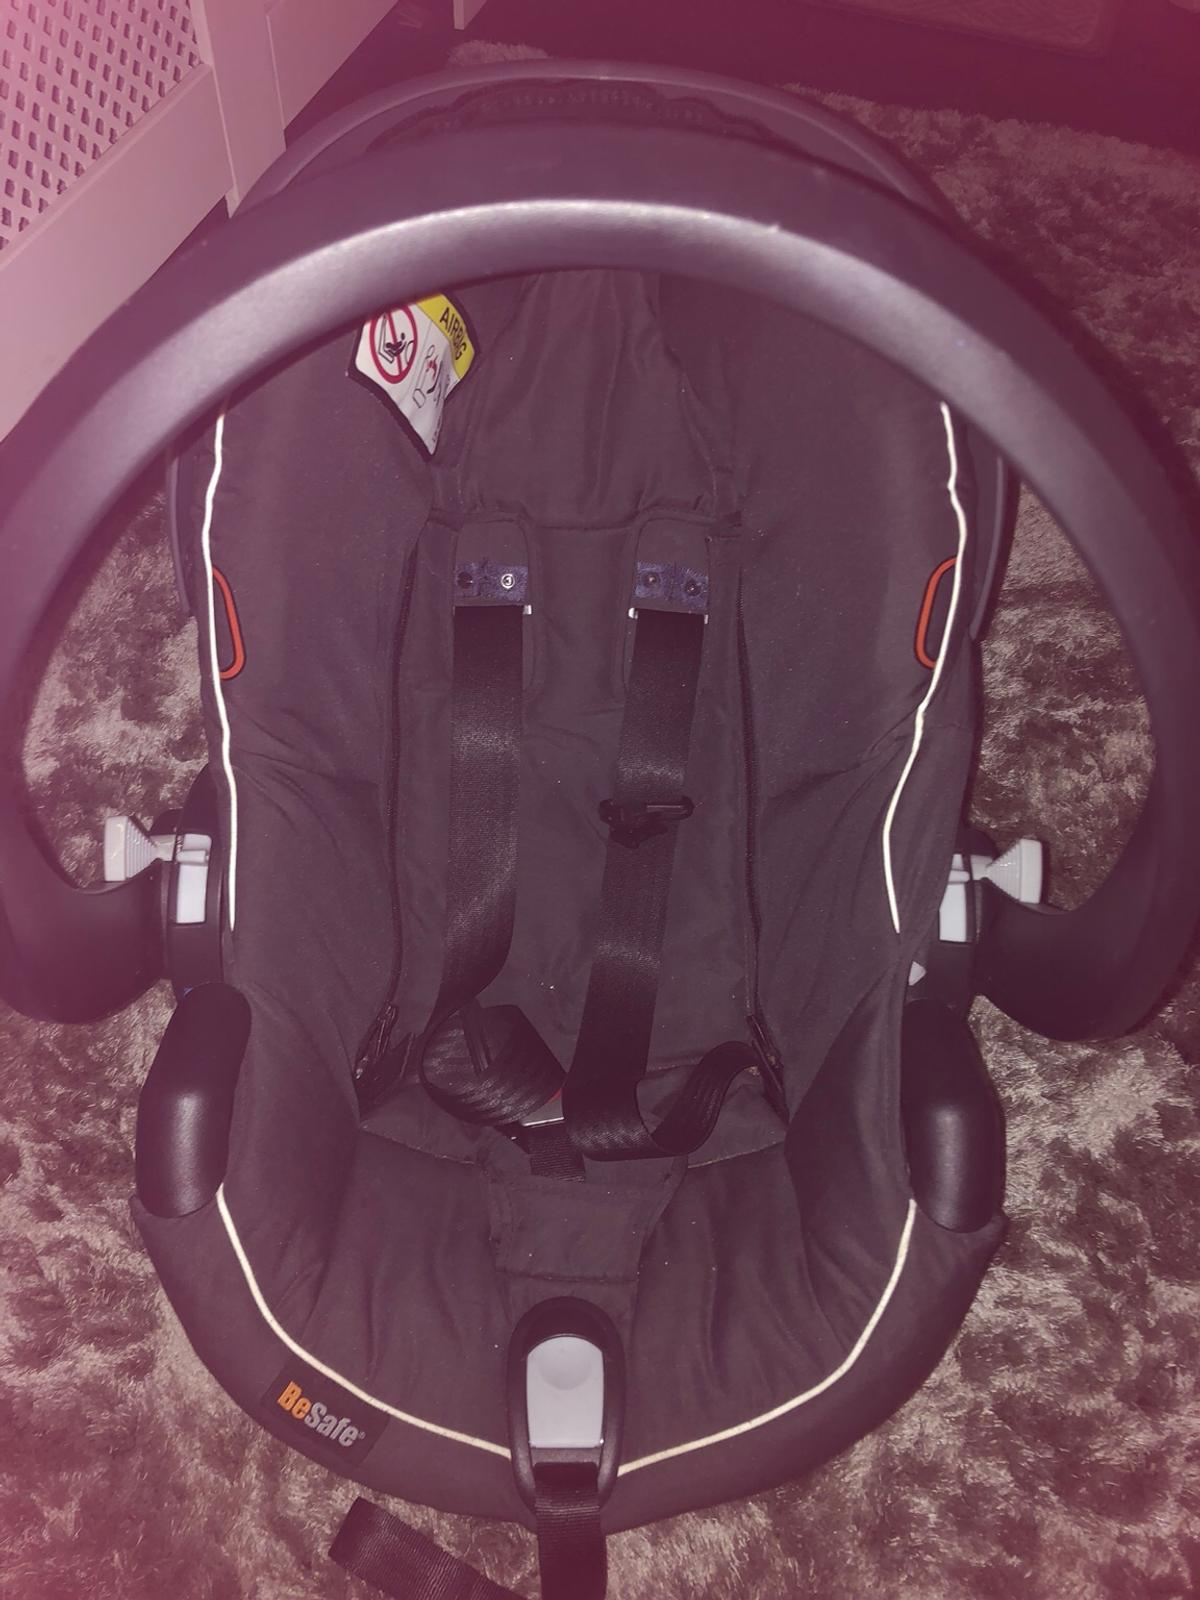 Be safe car seat practically brand new used only a couple of times, NEVER been in a accident originally paid £199.99 from John Lewis, it has a couple of scuff marks and head rest is missing (can't find it anywhere) also has Bugaboo attachments if needed can be removed, all washed and in amazing condition selling for £50 open to offers